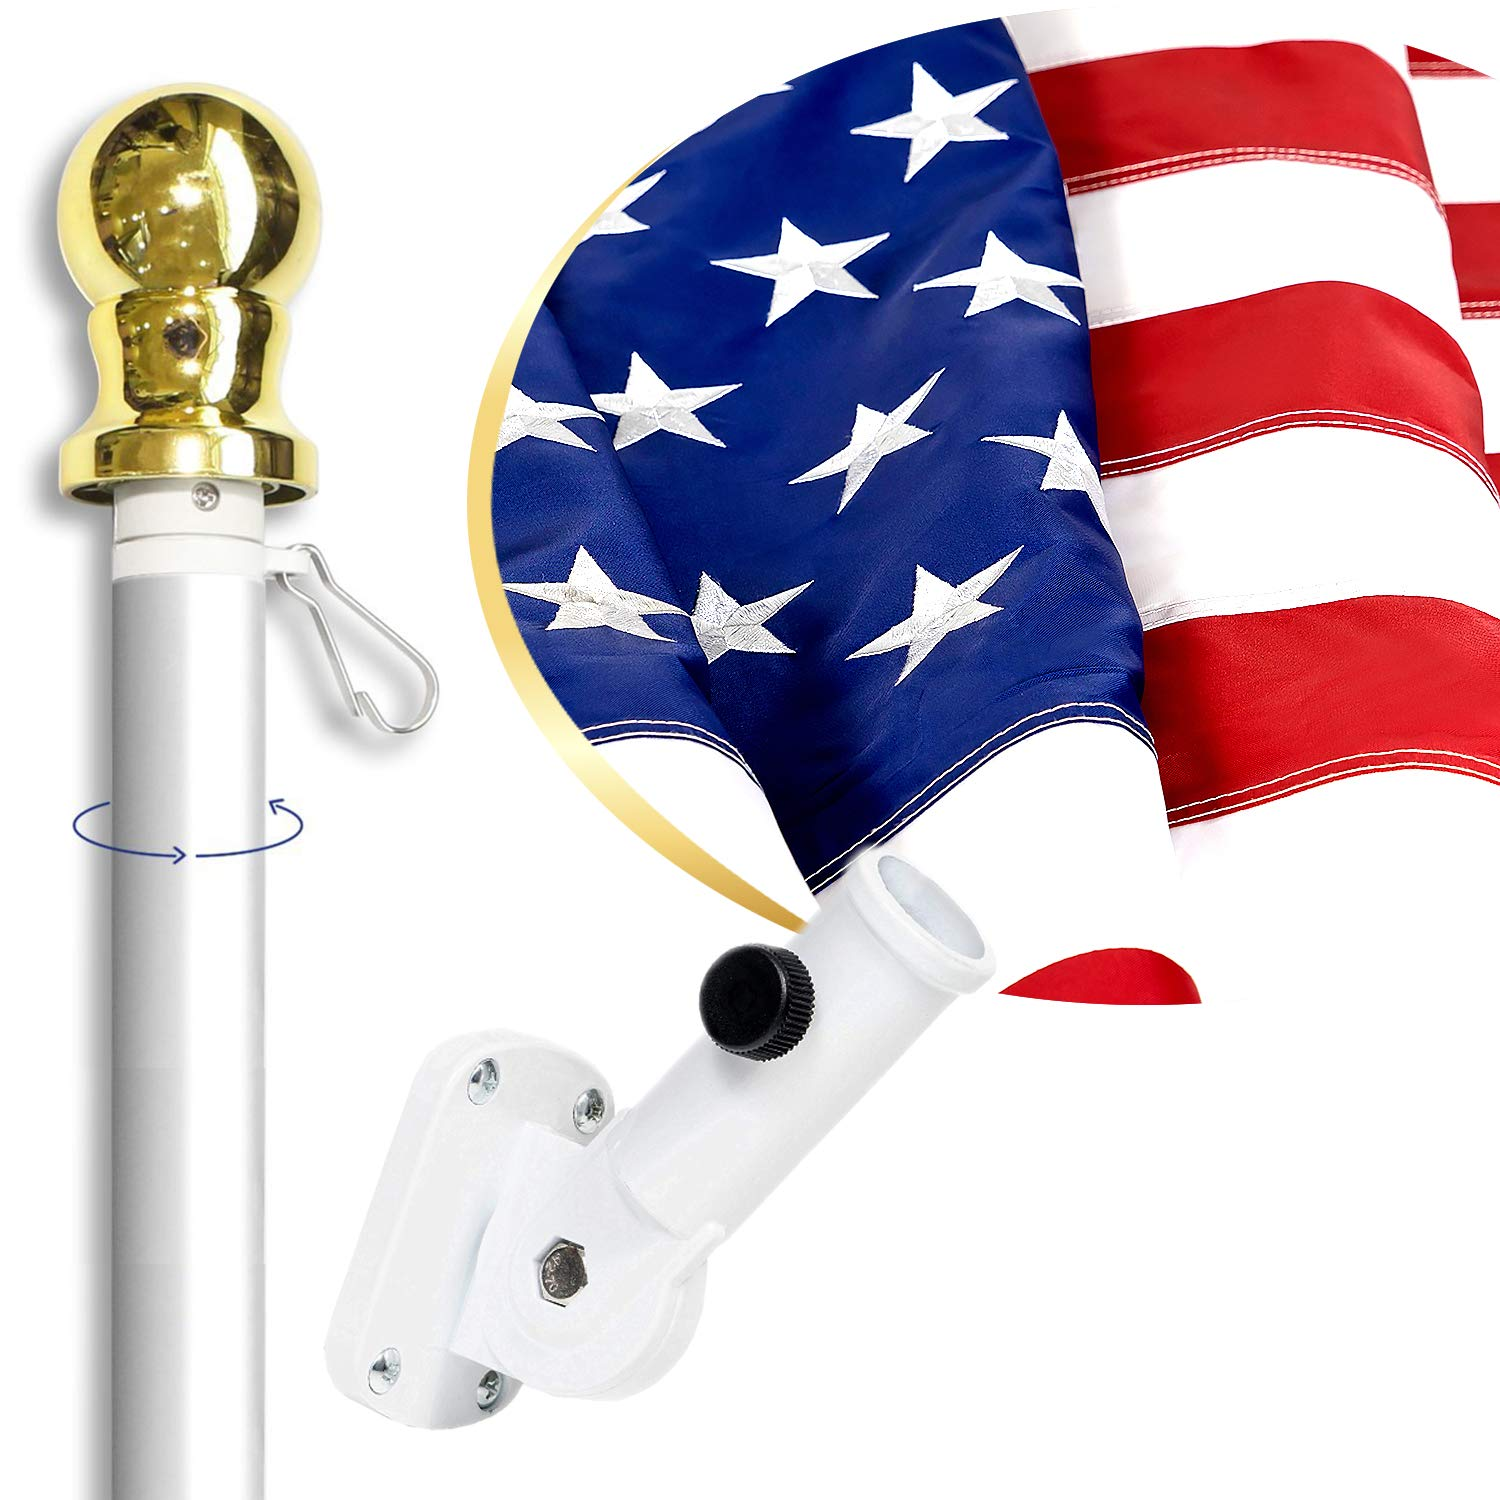 American Flag Kit Includes: 6ft Spinning Flagpole, 3x5 Embroidered US Flag, Adjustable Wall Mount Flag Holder, Commercial Residential Indoor Outdoor Use | US Flag Kit, Silver by Front Line Flags